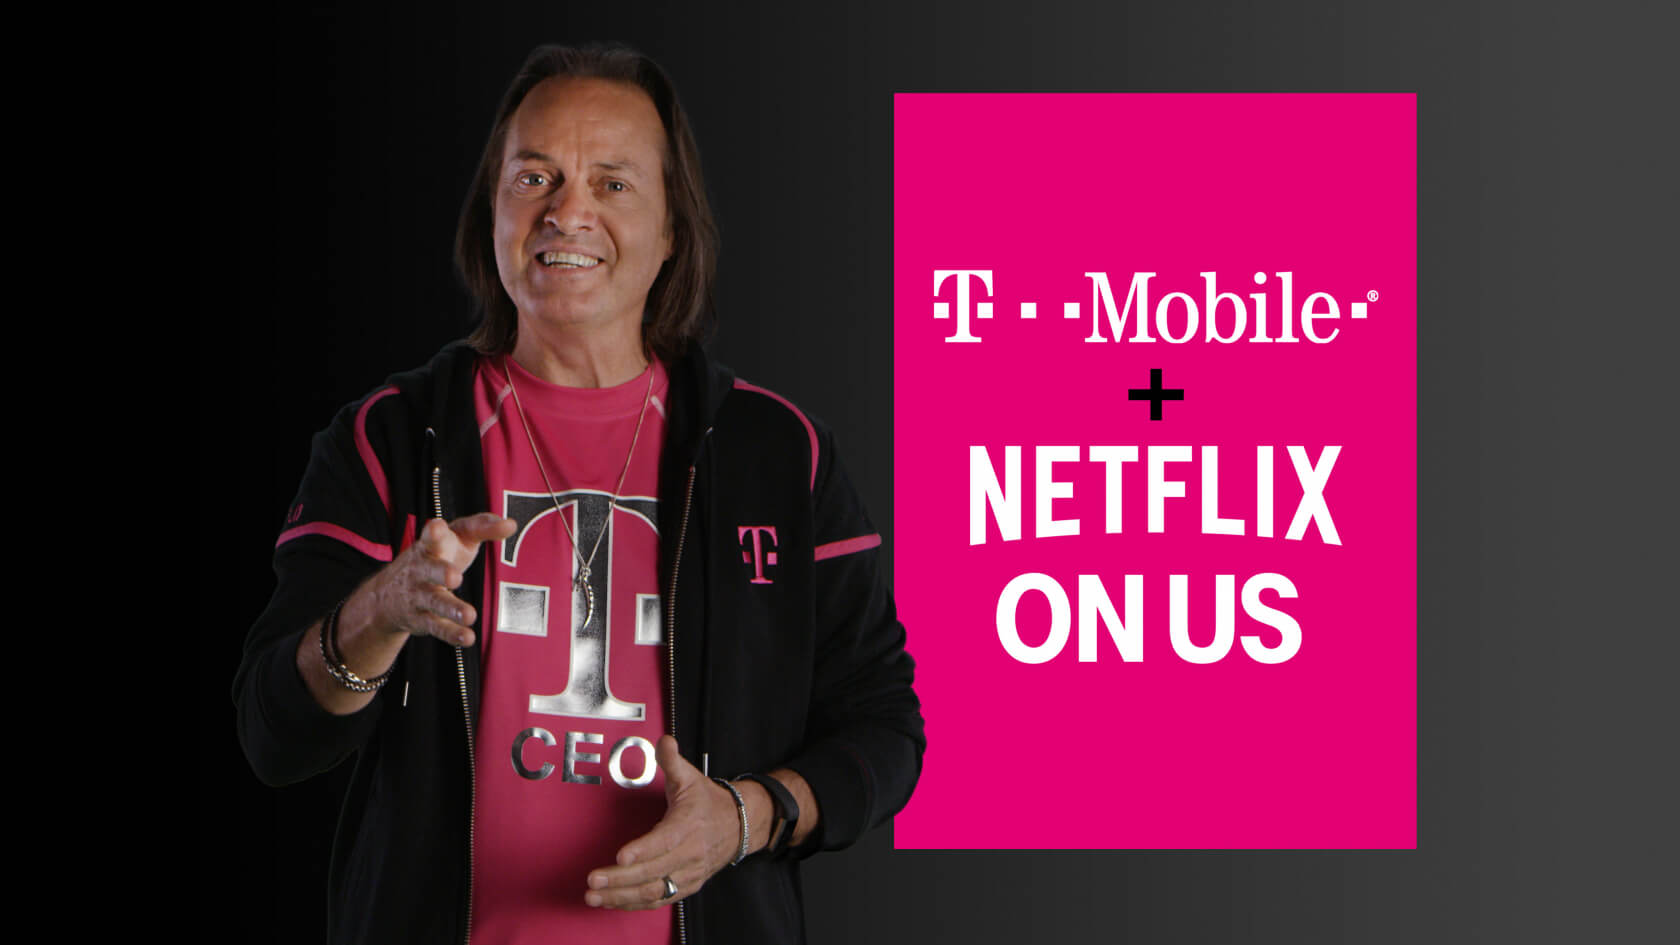 Netflix will soon come bundled with your T-Mobile plan